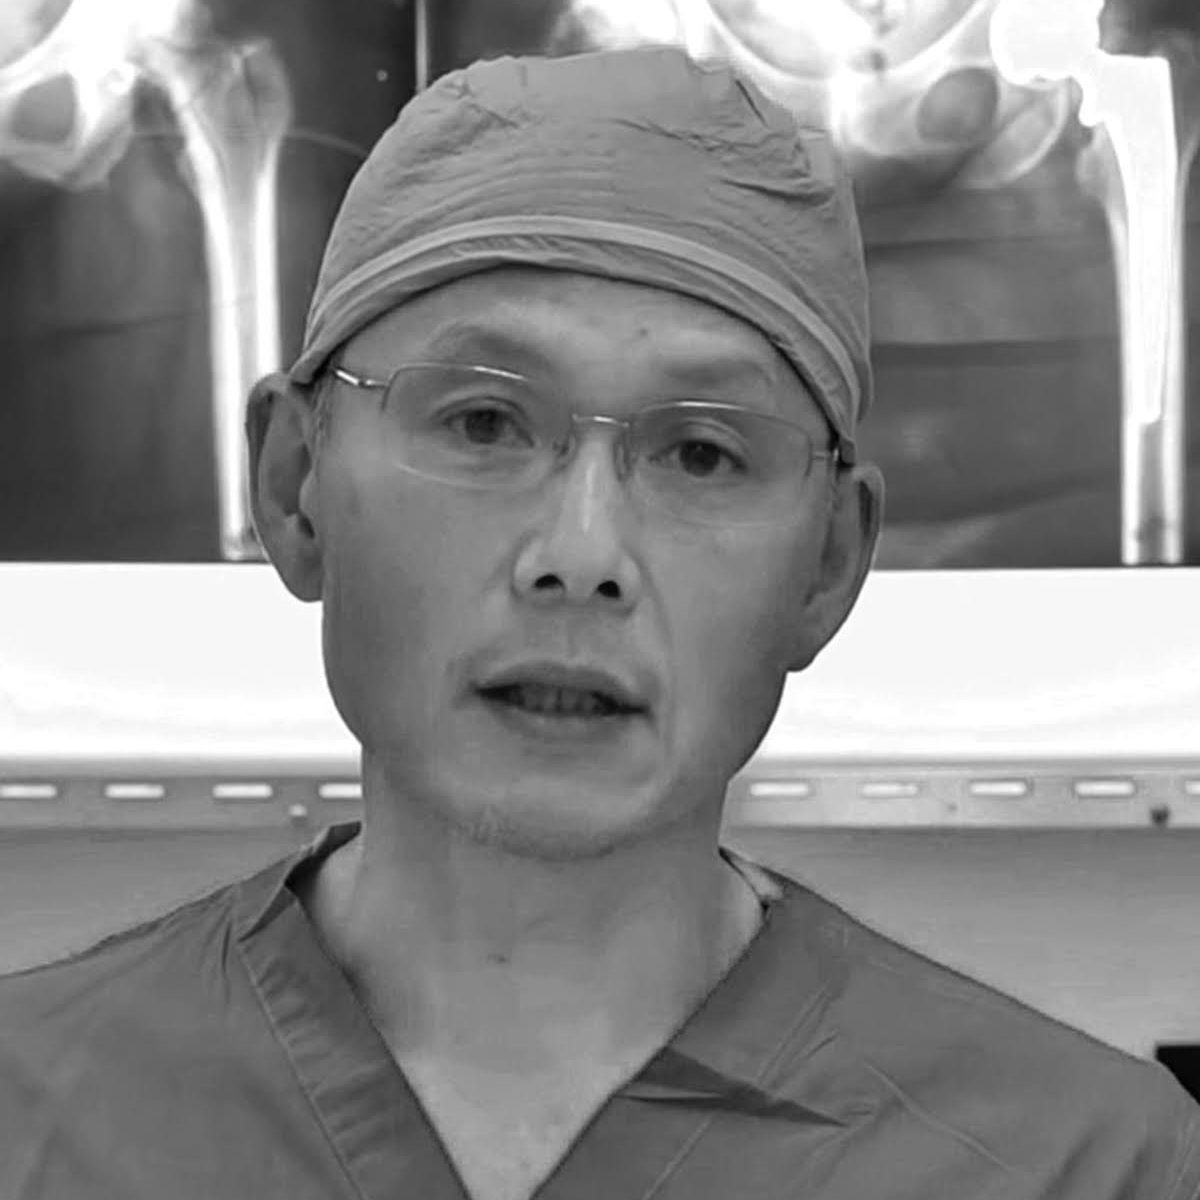 Dr. Andrew Yun - HIPS - Dr. Yun is the Medical Director of Joint Replacement Services at St. John's Medical Center in Santa Monica, CA and one of the best hip replacement surgeons in the U.S., if not the world. After a failed hip resurfacing procedure by another surgeon in 2009, Dr. Yun performed a total hip revision on my left hip in 2012 and a total hip replacement on my right side the following year. I wouldn't be biking, surfing, practicing yoga or just plain walking if it weren't for Dr. Yun.